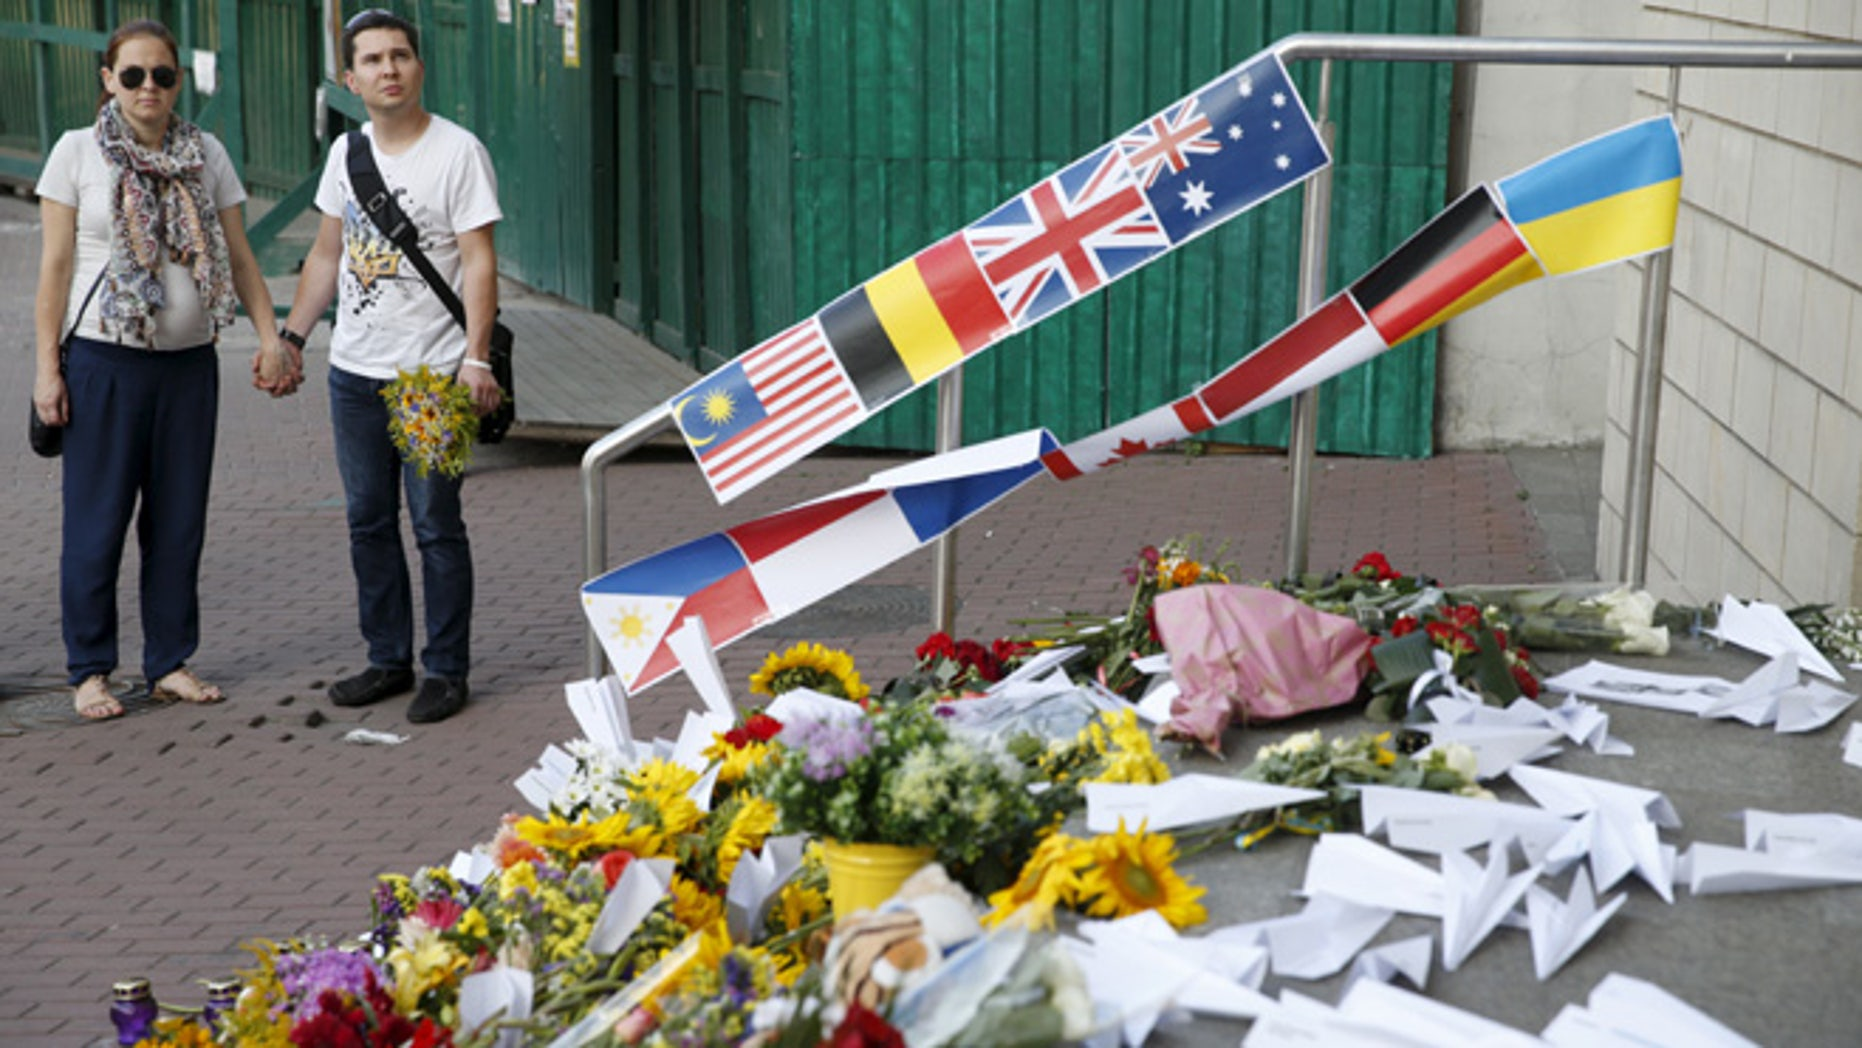 July 17, 2015: People gather outside the Dutch embassy to commemorate the victims of the Malaysia Airlines flight MH17 plane crash in 2014 in Kiev, Ukraine.